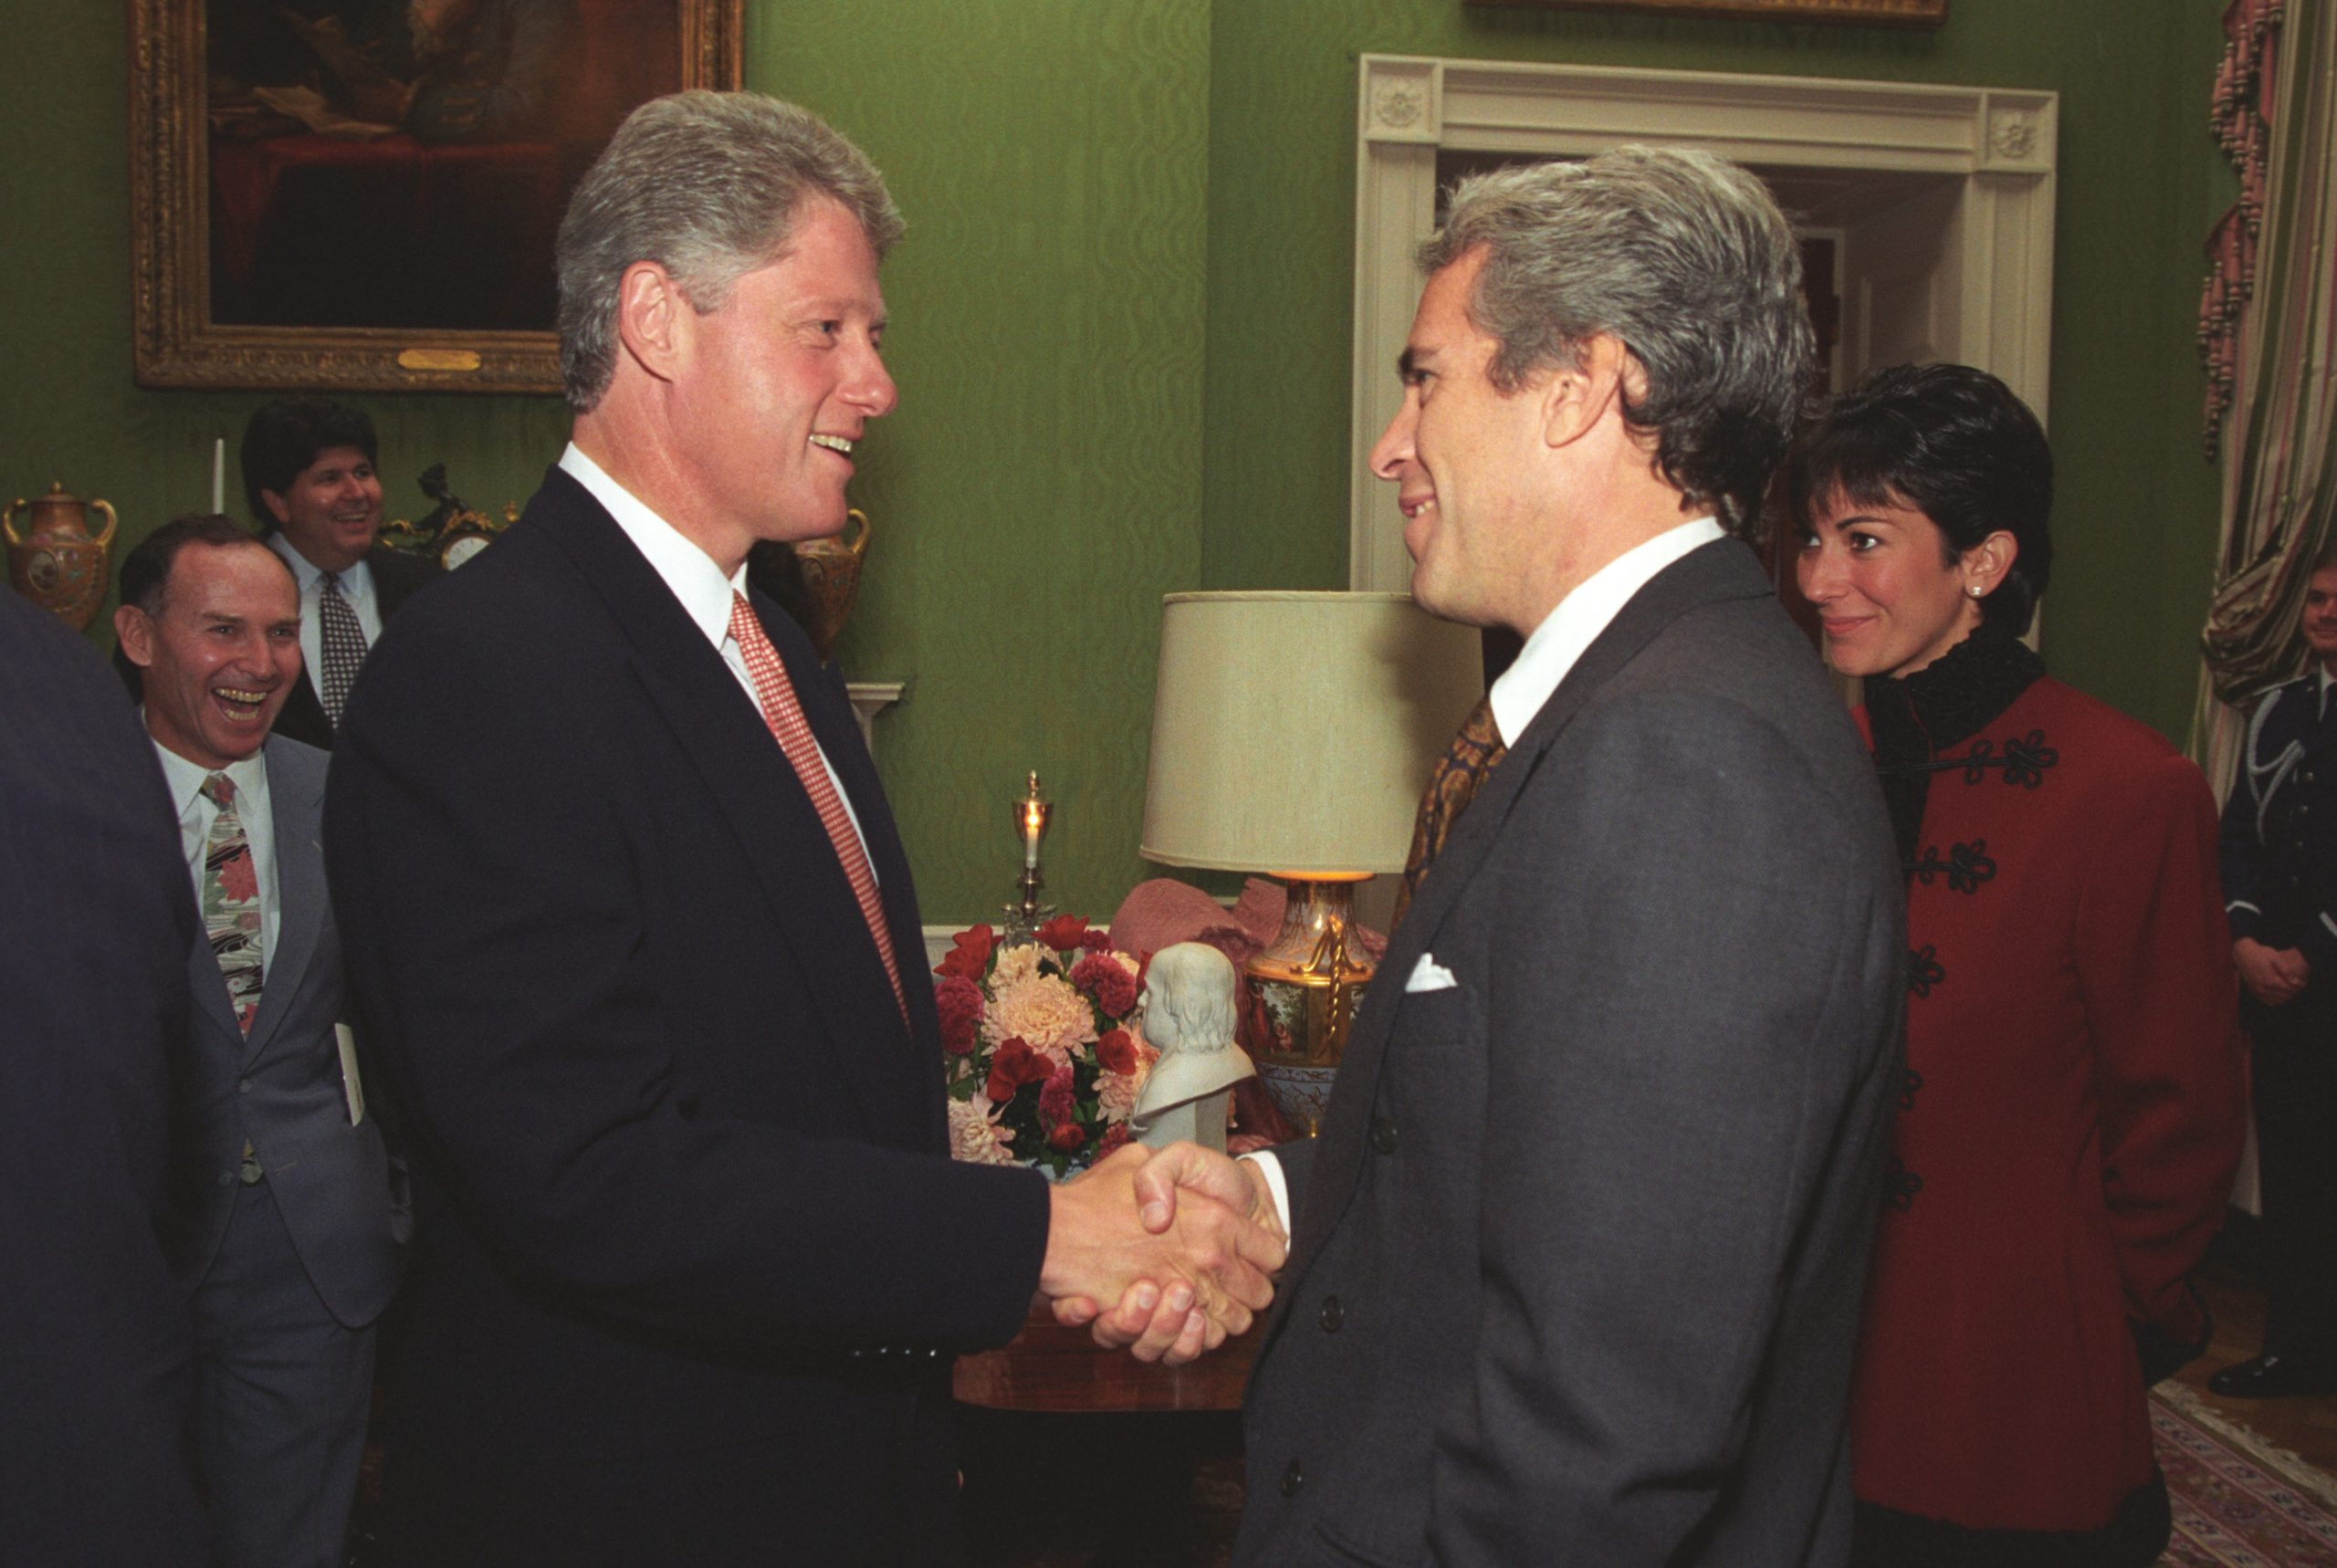 Photo courtesy of the William J. Clinton Presidential Library.